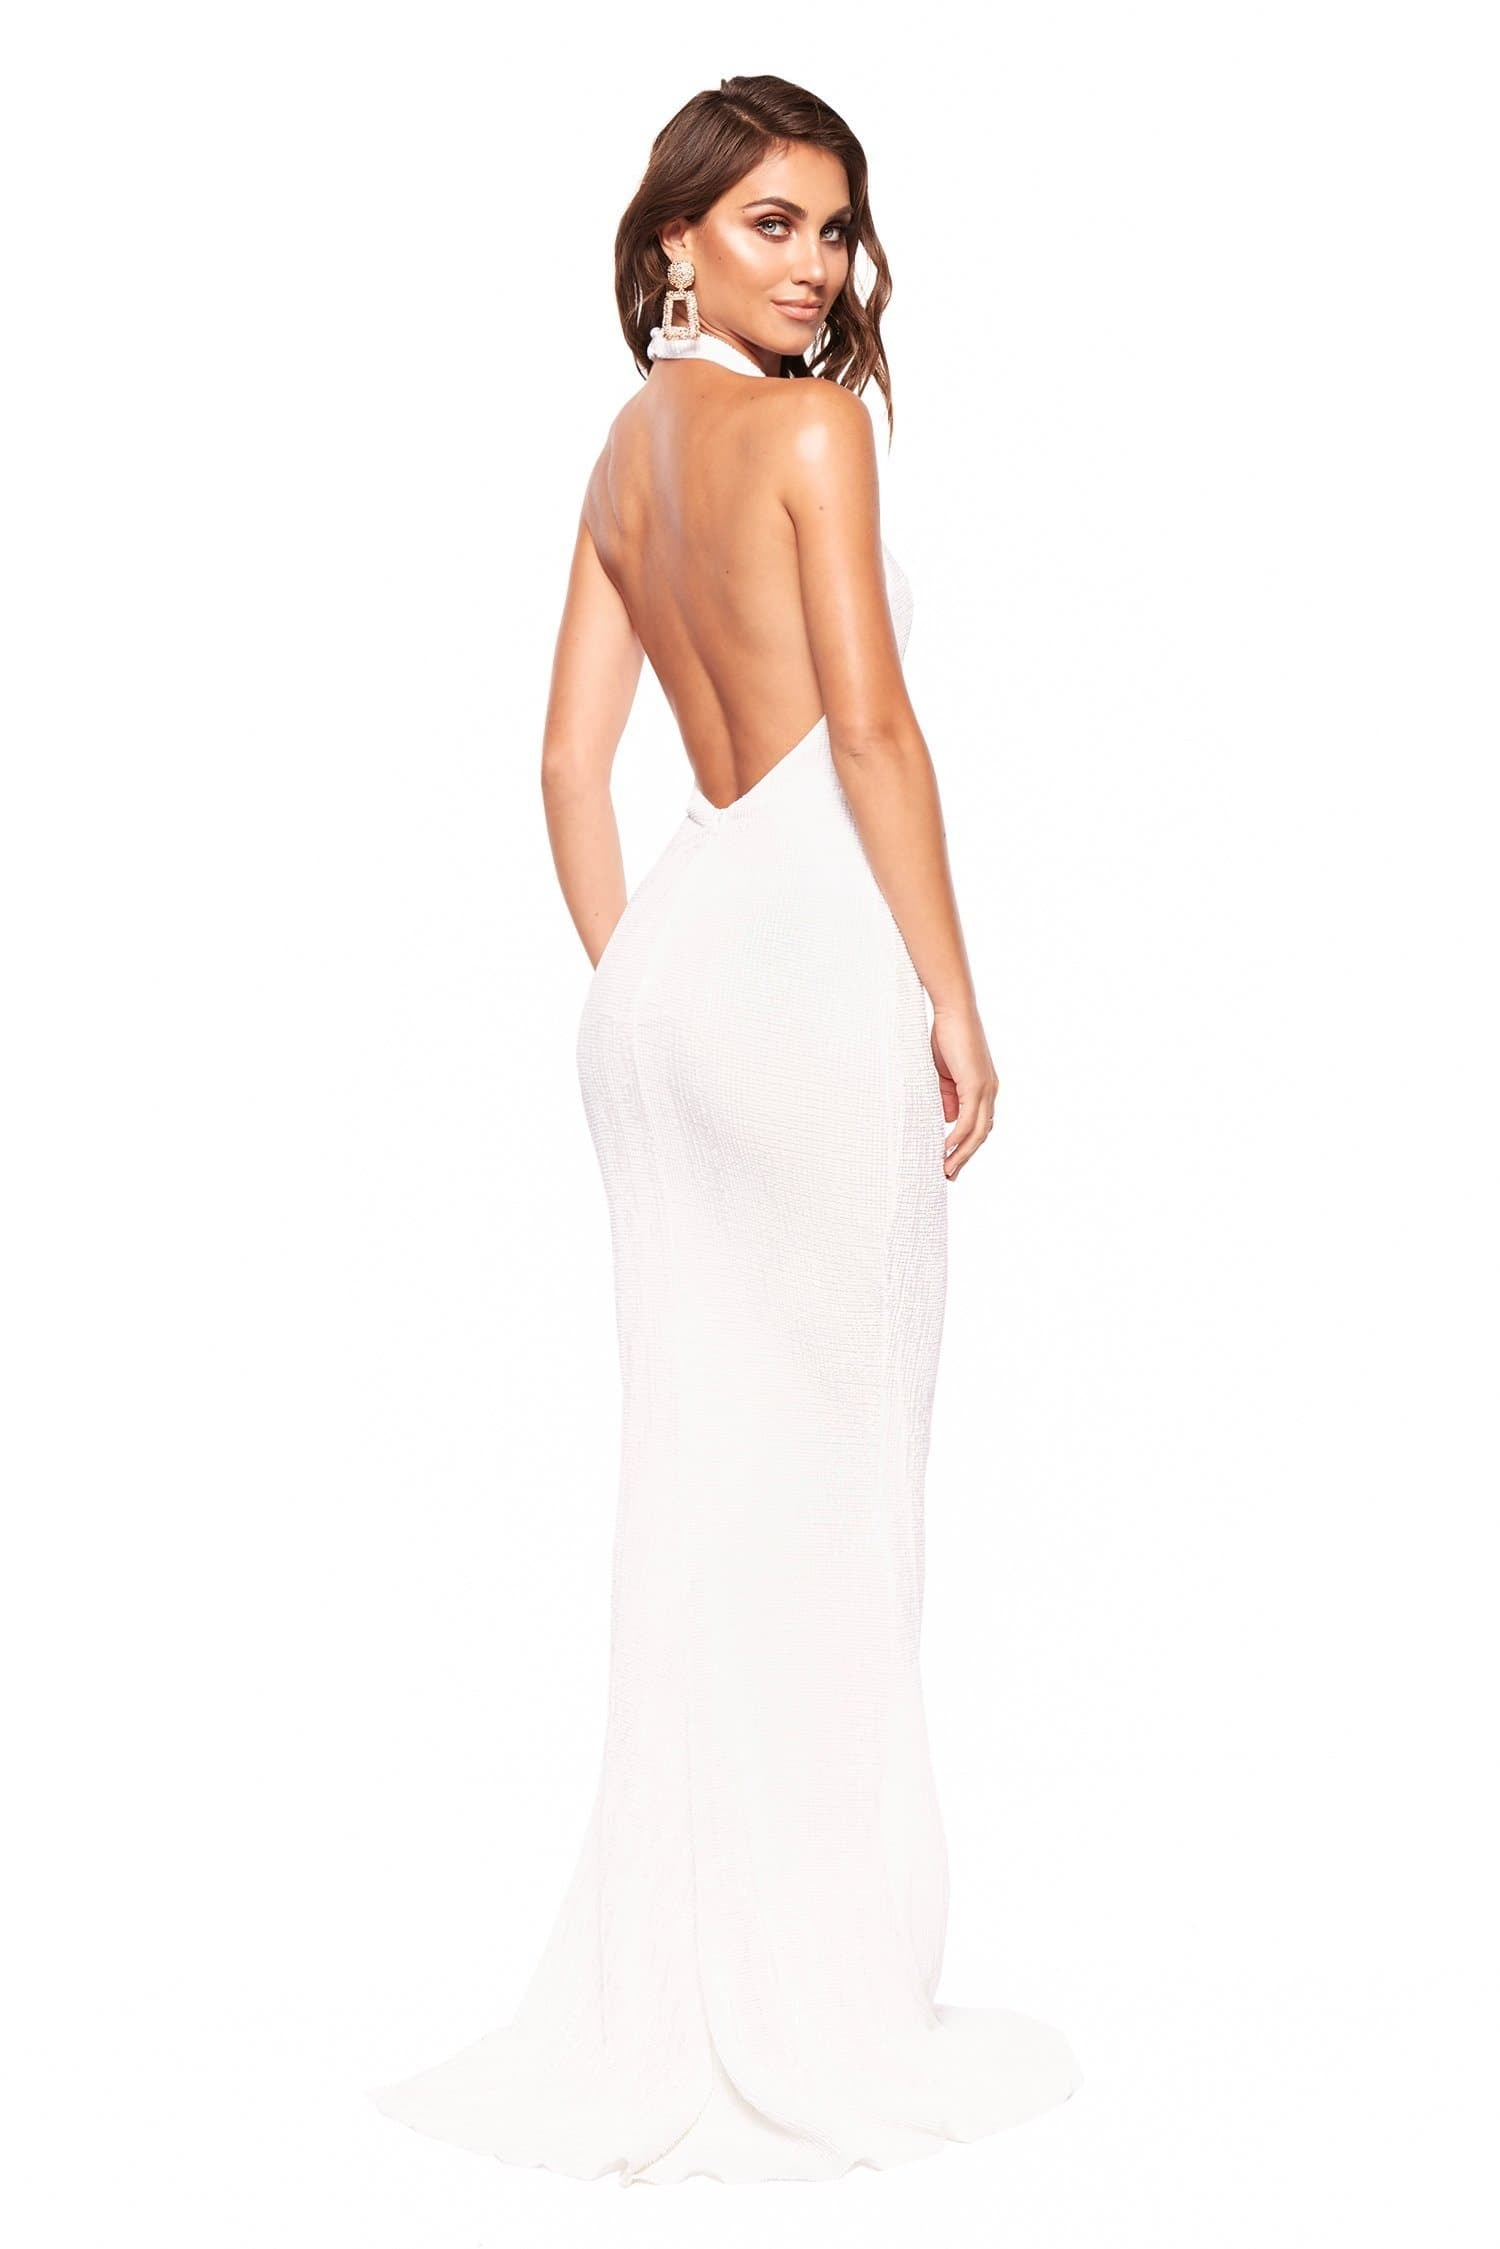 81b82870f05 ... A N Valentina - White Sequin Halter Neck Gown with Mermaid Tail ...